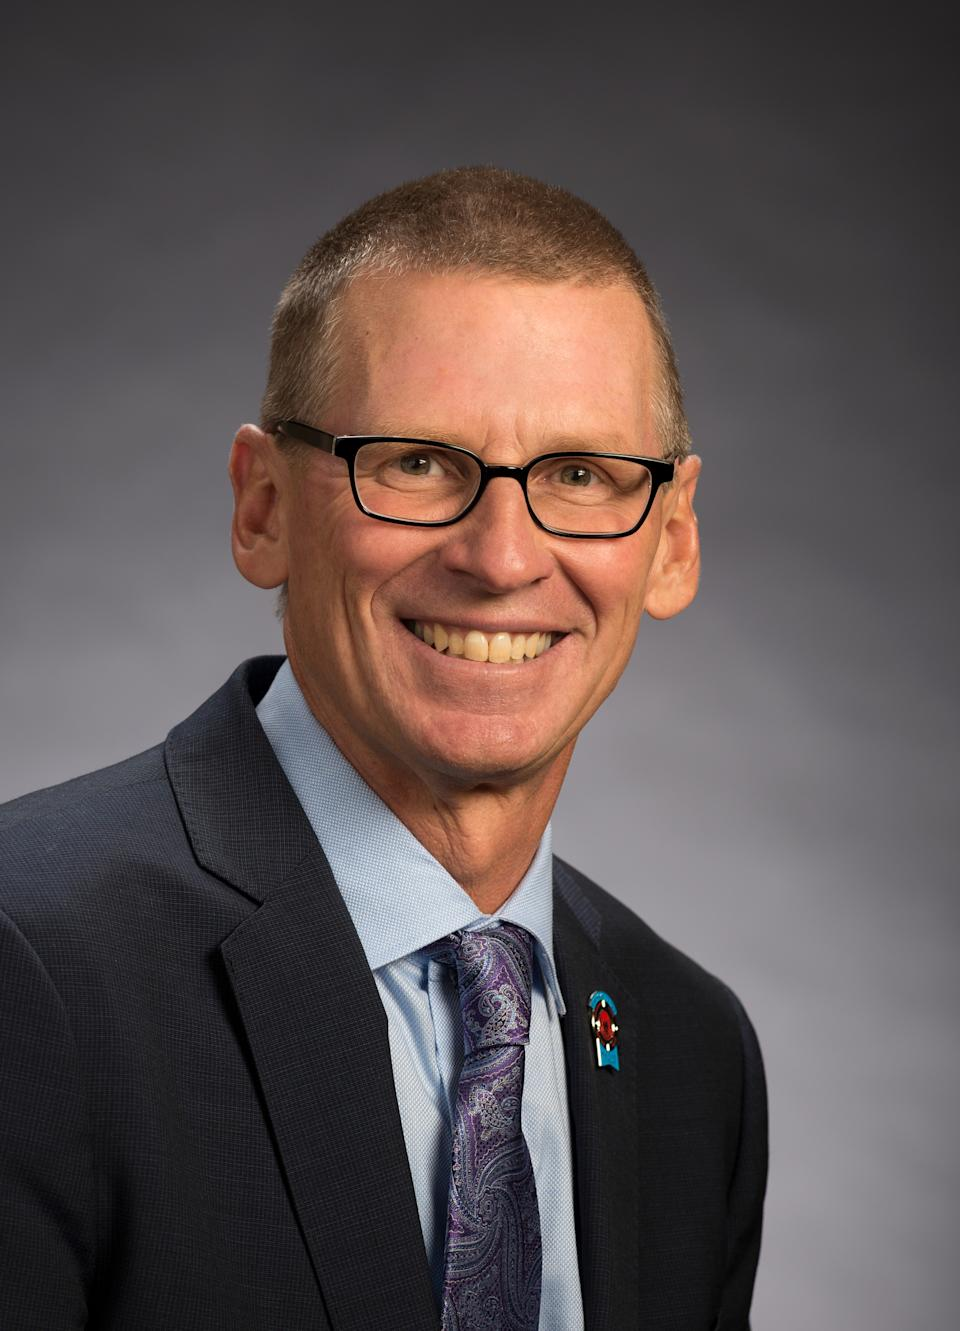 Todd Penegor became Wendy's CEO in May 2016. Credit: http://tomdubanowich.com